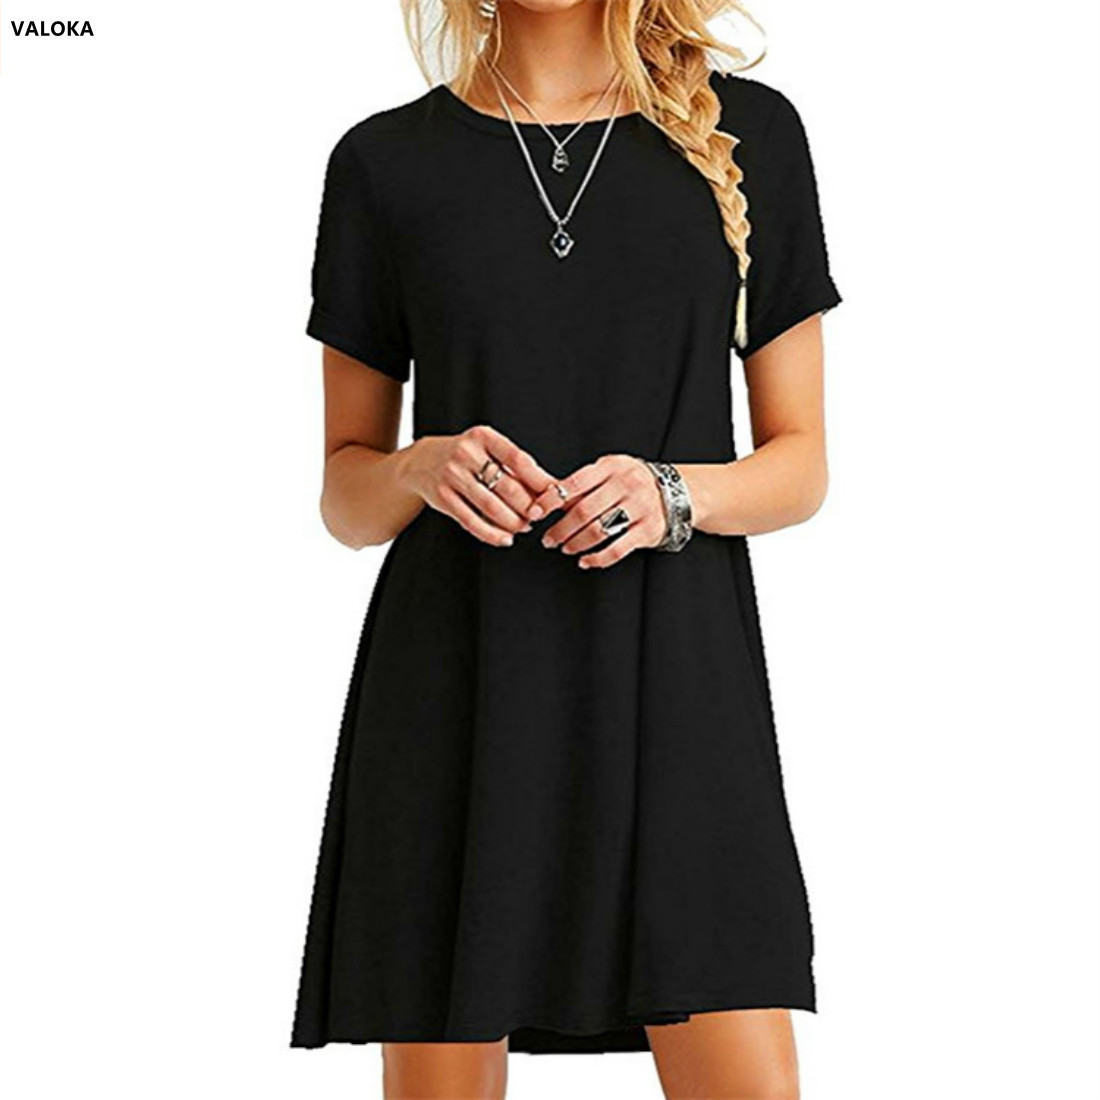 VALOKA Womens Casual Plain Short Sleeve Simple T-Shirt Loose summer women Dress vestido